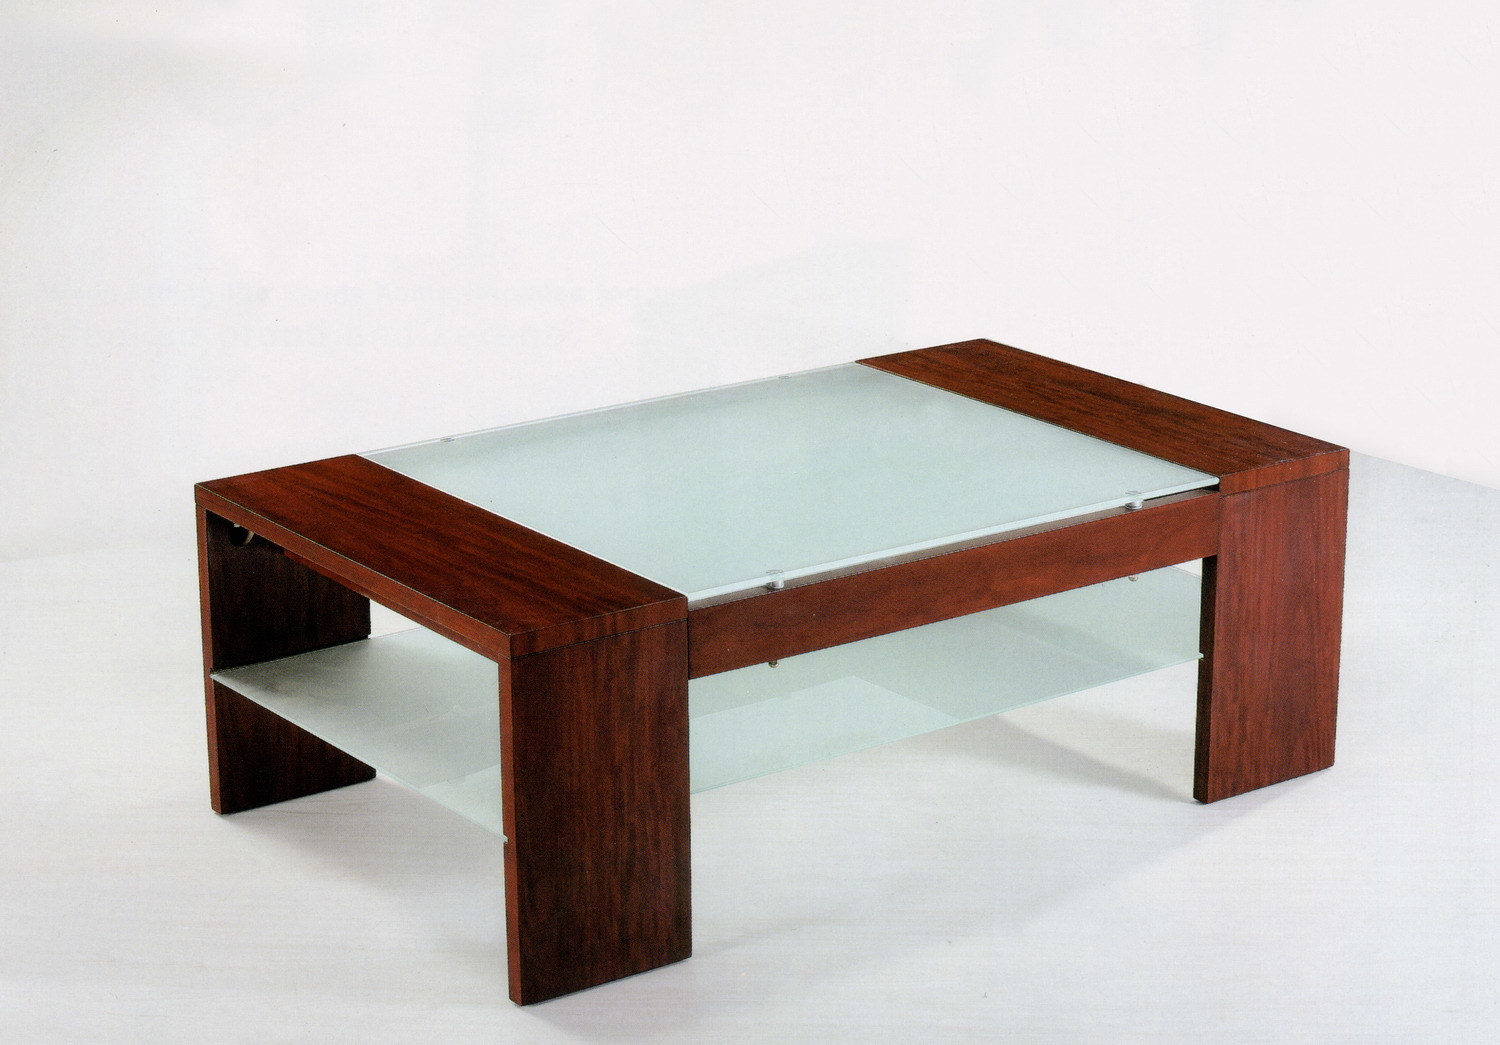 Magnificent Wood and Glass Coffee Table 1500 x 1045 · 235 kB · jpeg